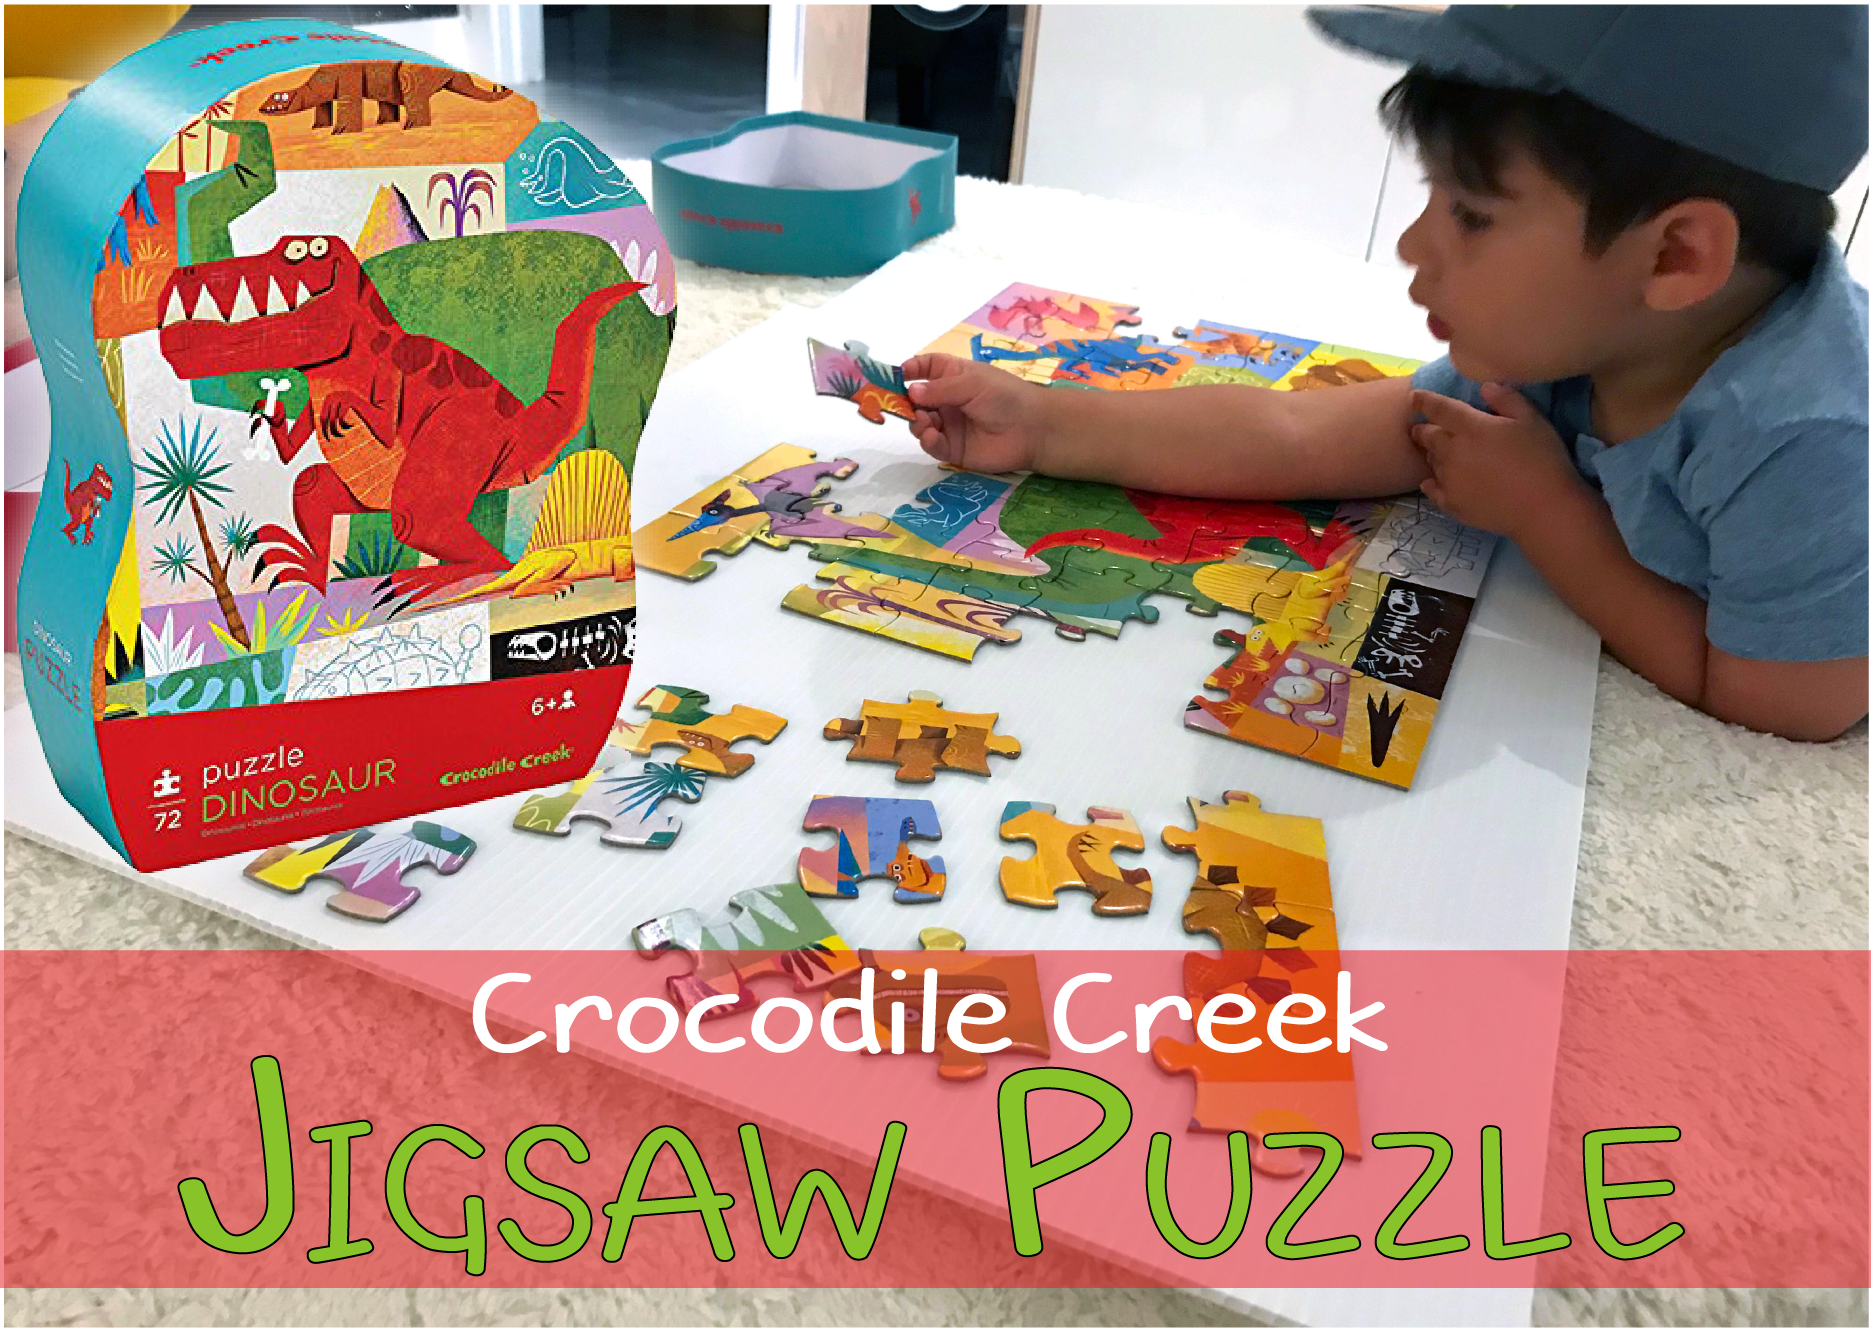 Crocodile Creek Dinosaur Junior Jigsaw Puzzle